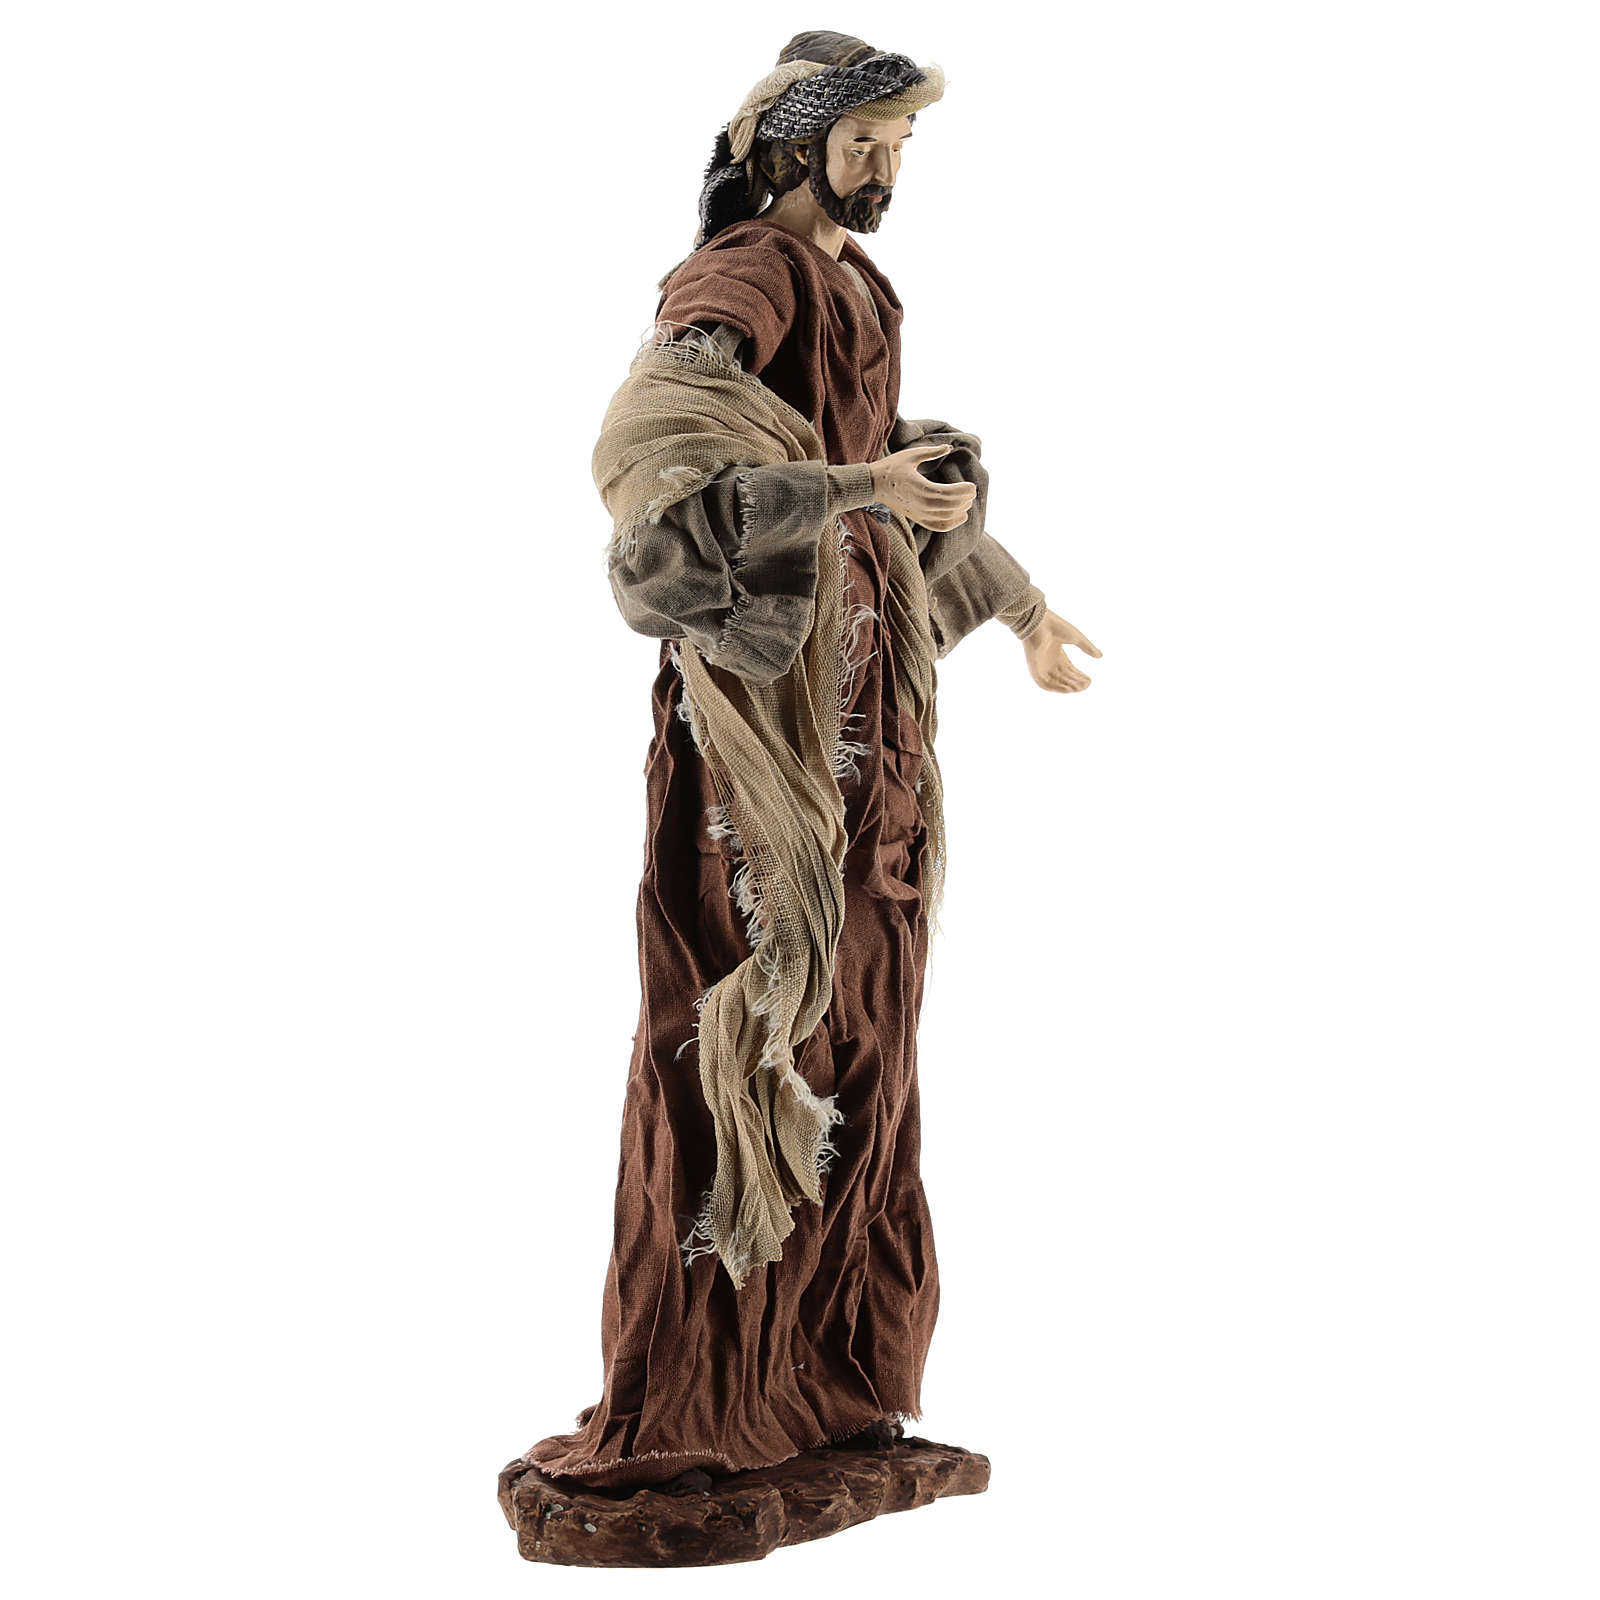 Nativity 35 cm resin with dresses made of bronze and burgundy cloth, Shabby Chic style 3